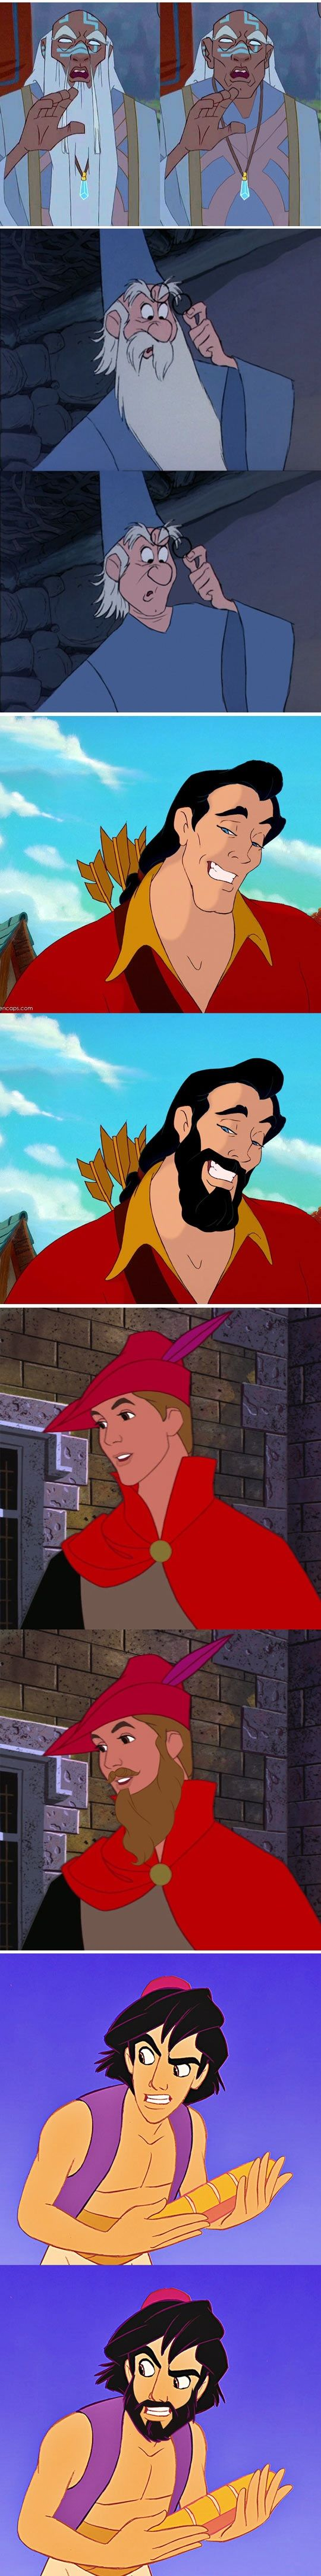 Disney Dudes with and without beards. Aladdin with a beard looks JUST like my husband! Lol!